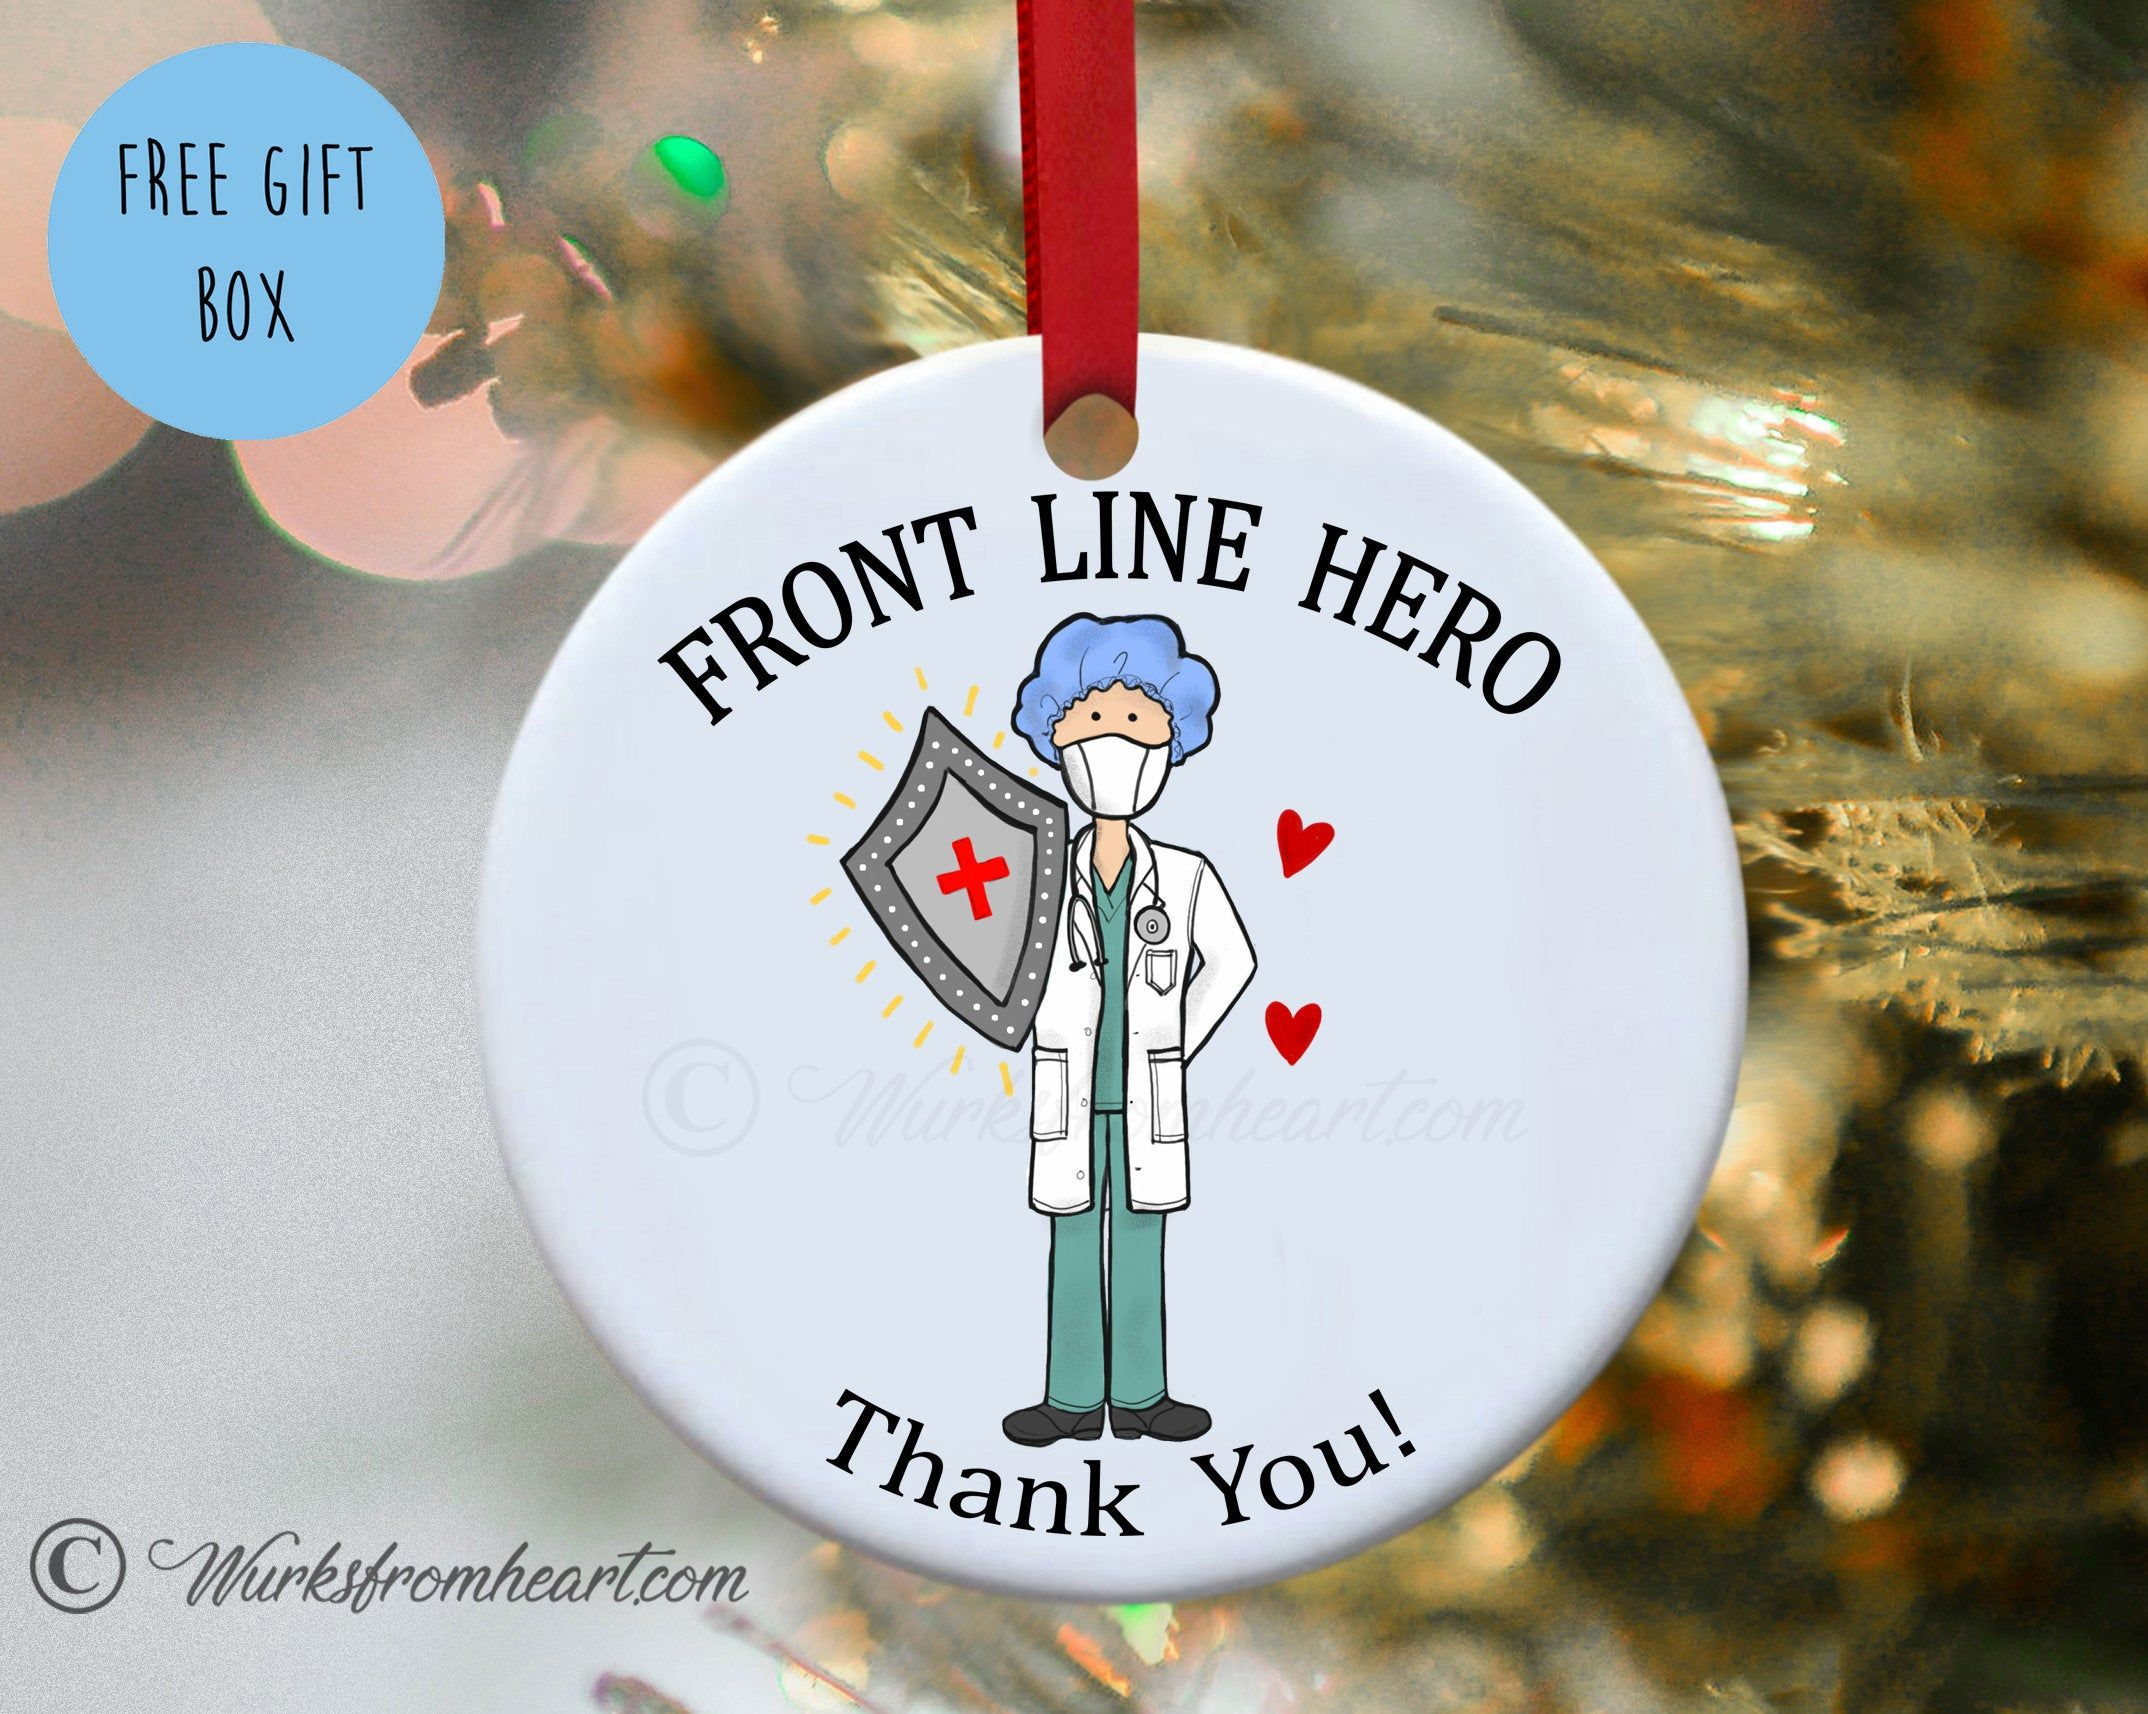 Front line hero male doctor essential medical worker